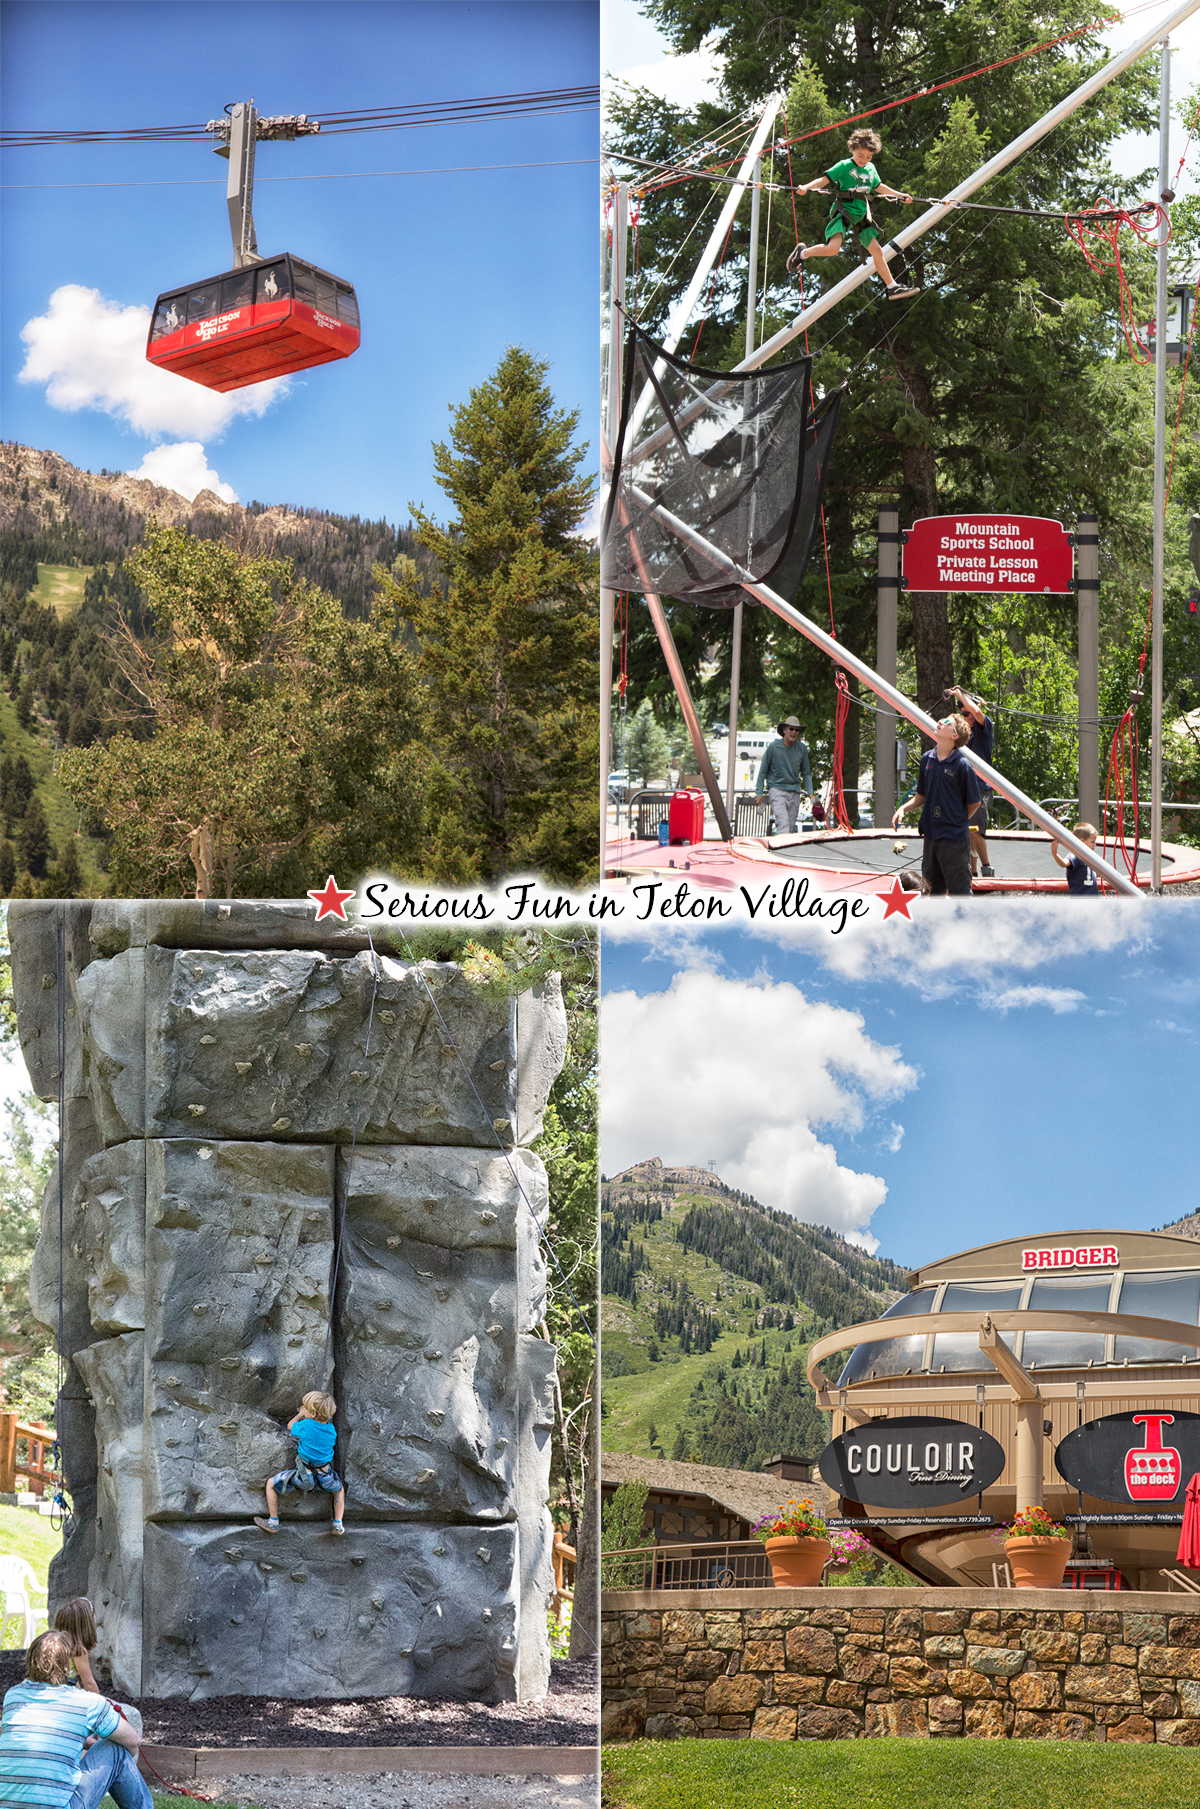 Spoil yourself with a day spent in Teton Village in Jackson, Wyoming